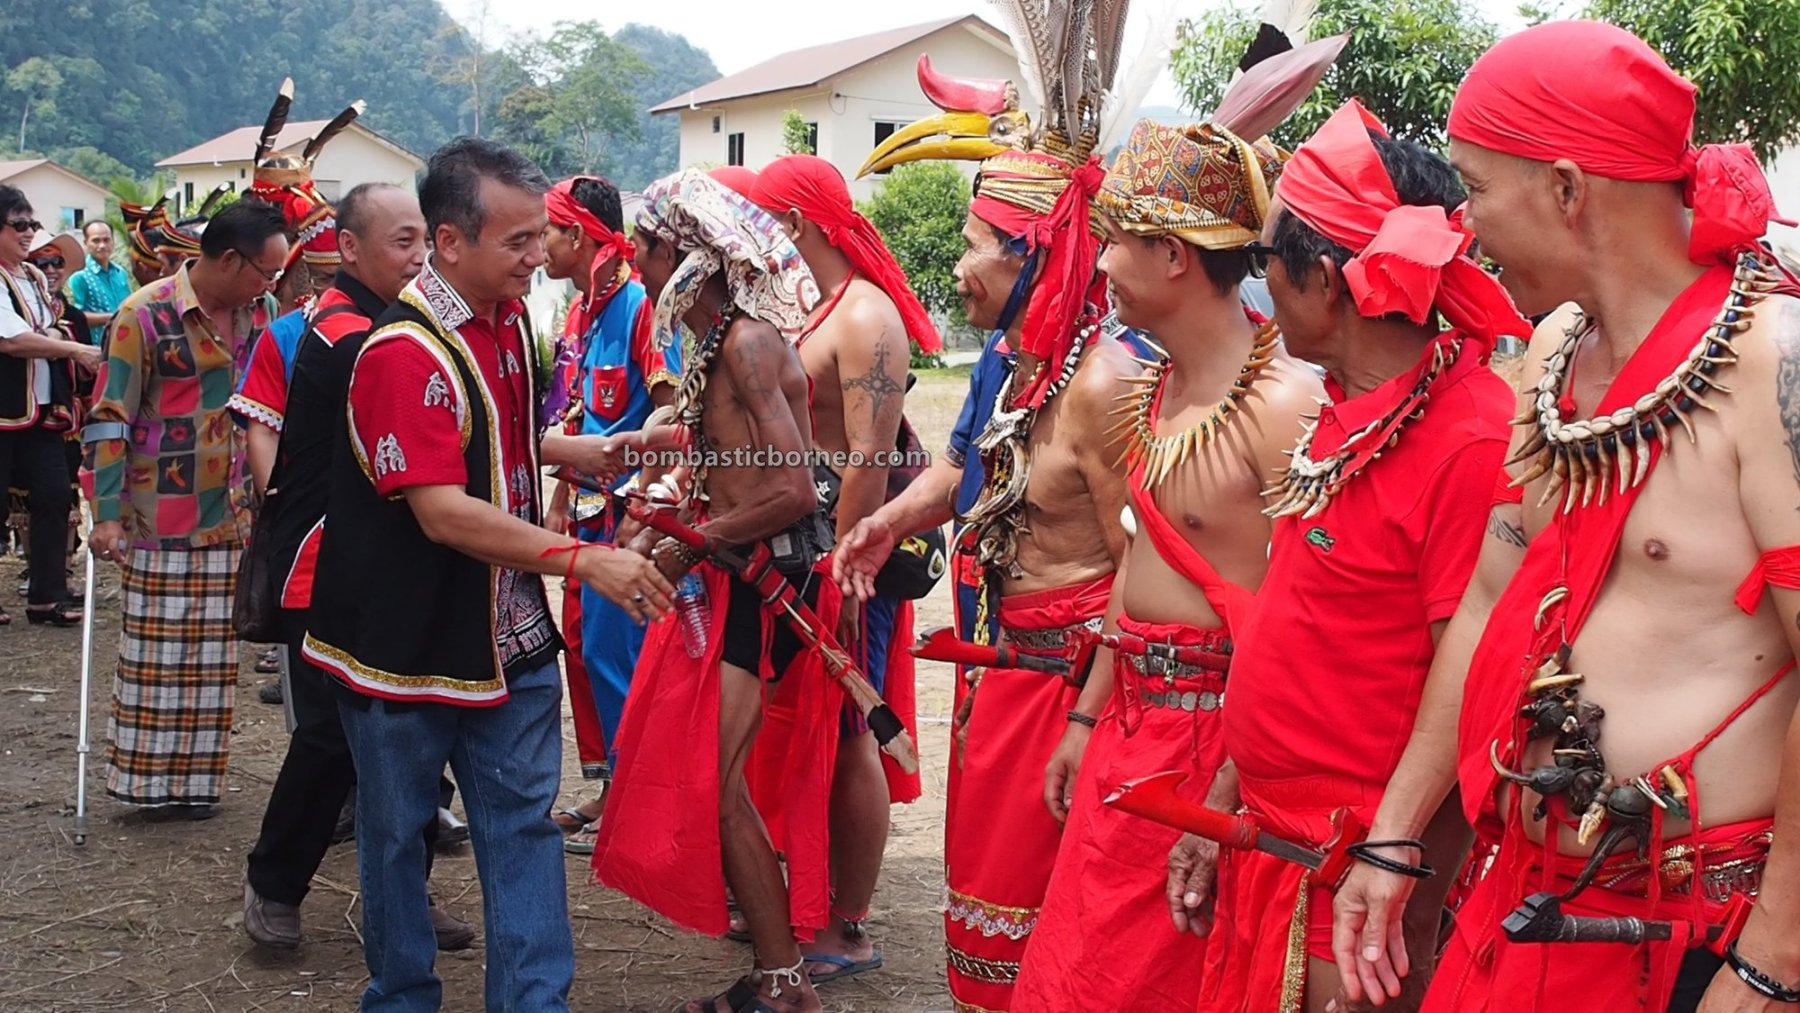 Pesta Nyarok Biya, Bengoh Dam Resettlement Scheme, traditional, budaya, culture, event, Ethnic, native, Semban village, Borneo, Malaysia, Padawan, travel guide, cross border, 探索婆罗洲游踪, 砂拉越原住民丰收节